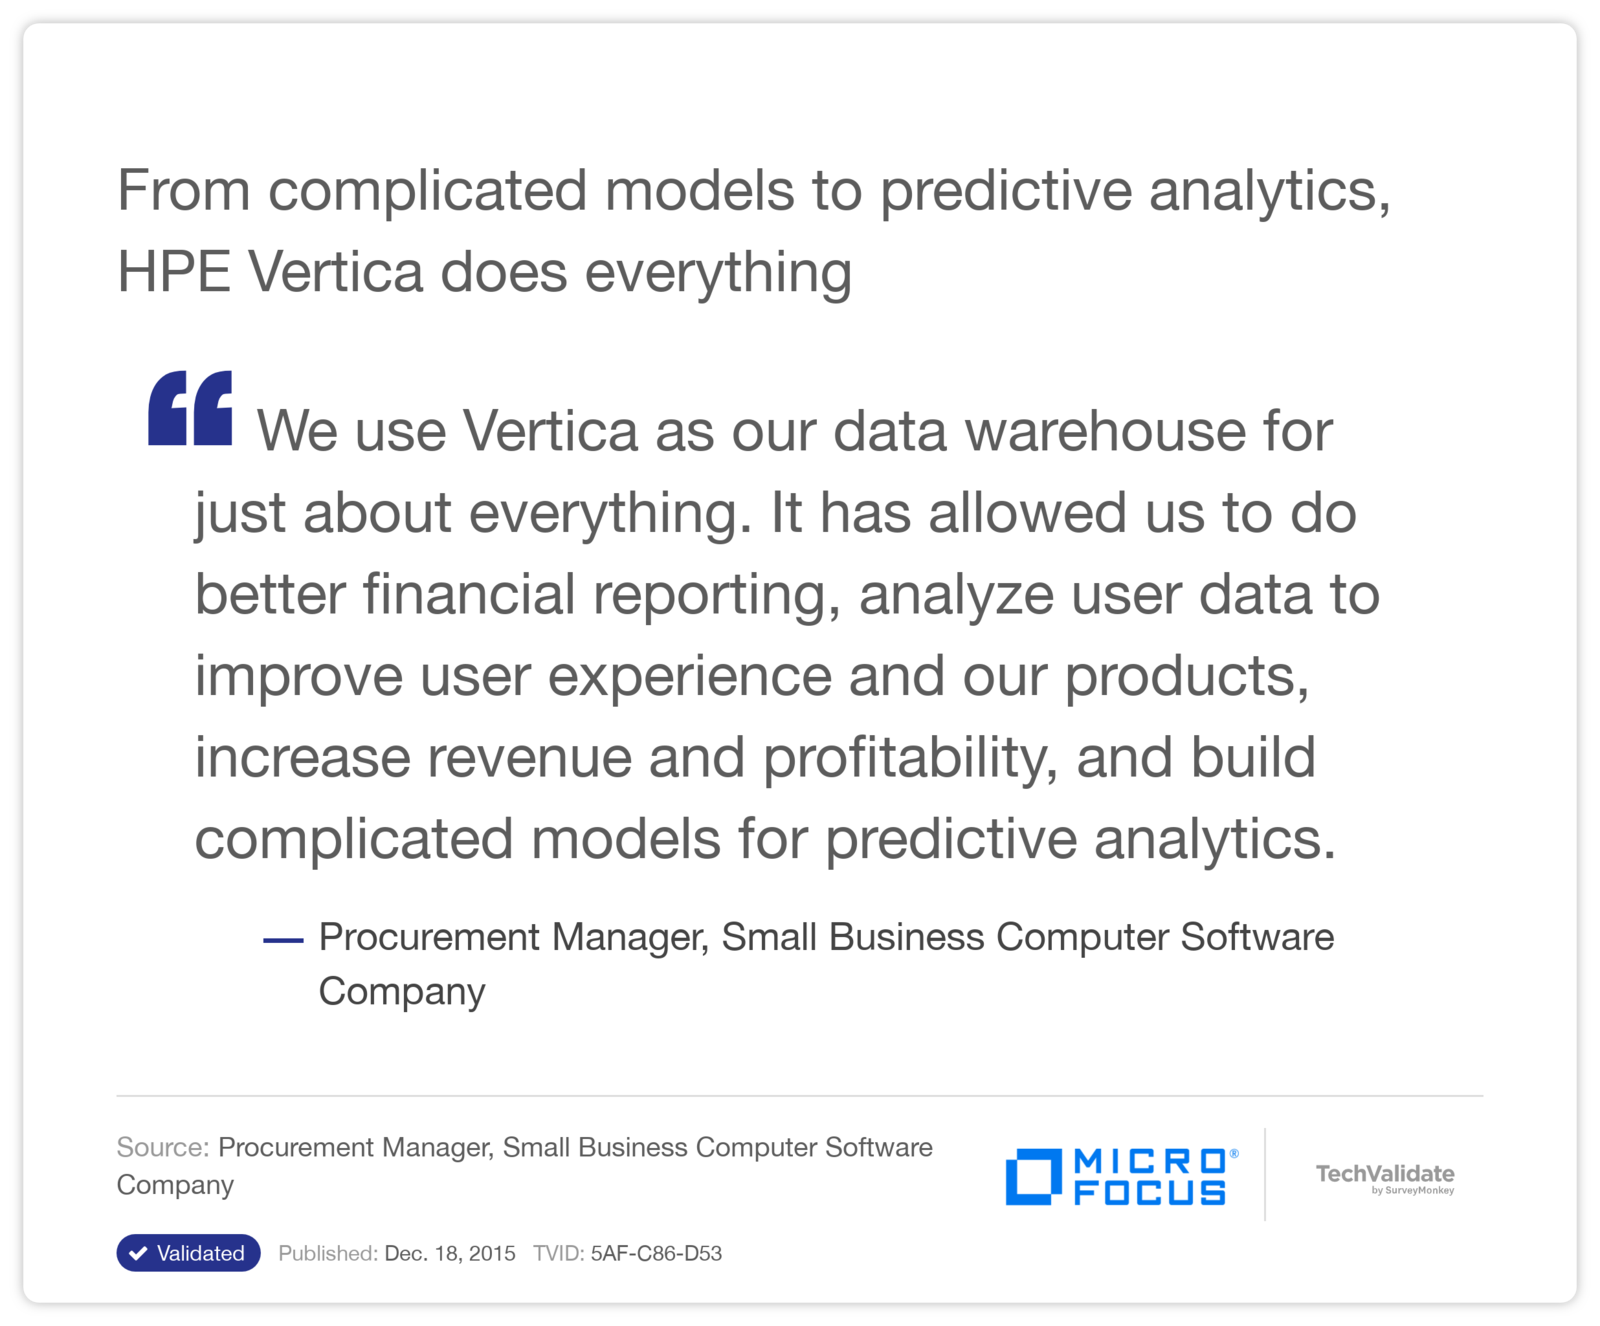 From complicated models to predictive analytics, HPE Vertica does everything